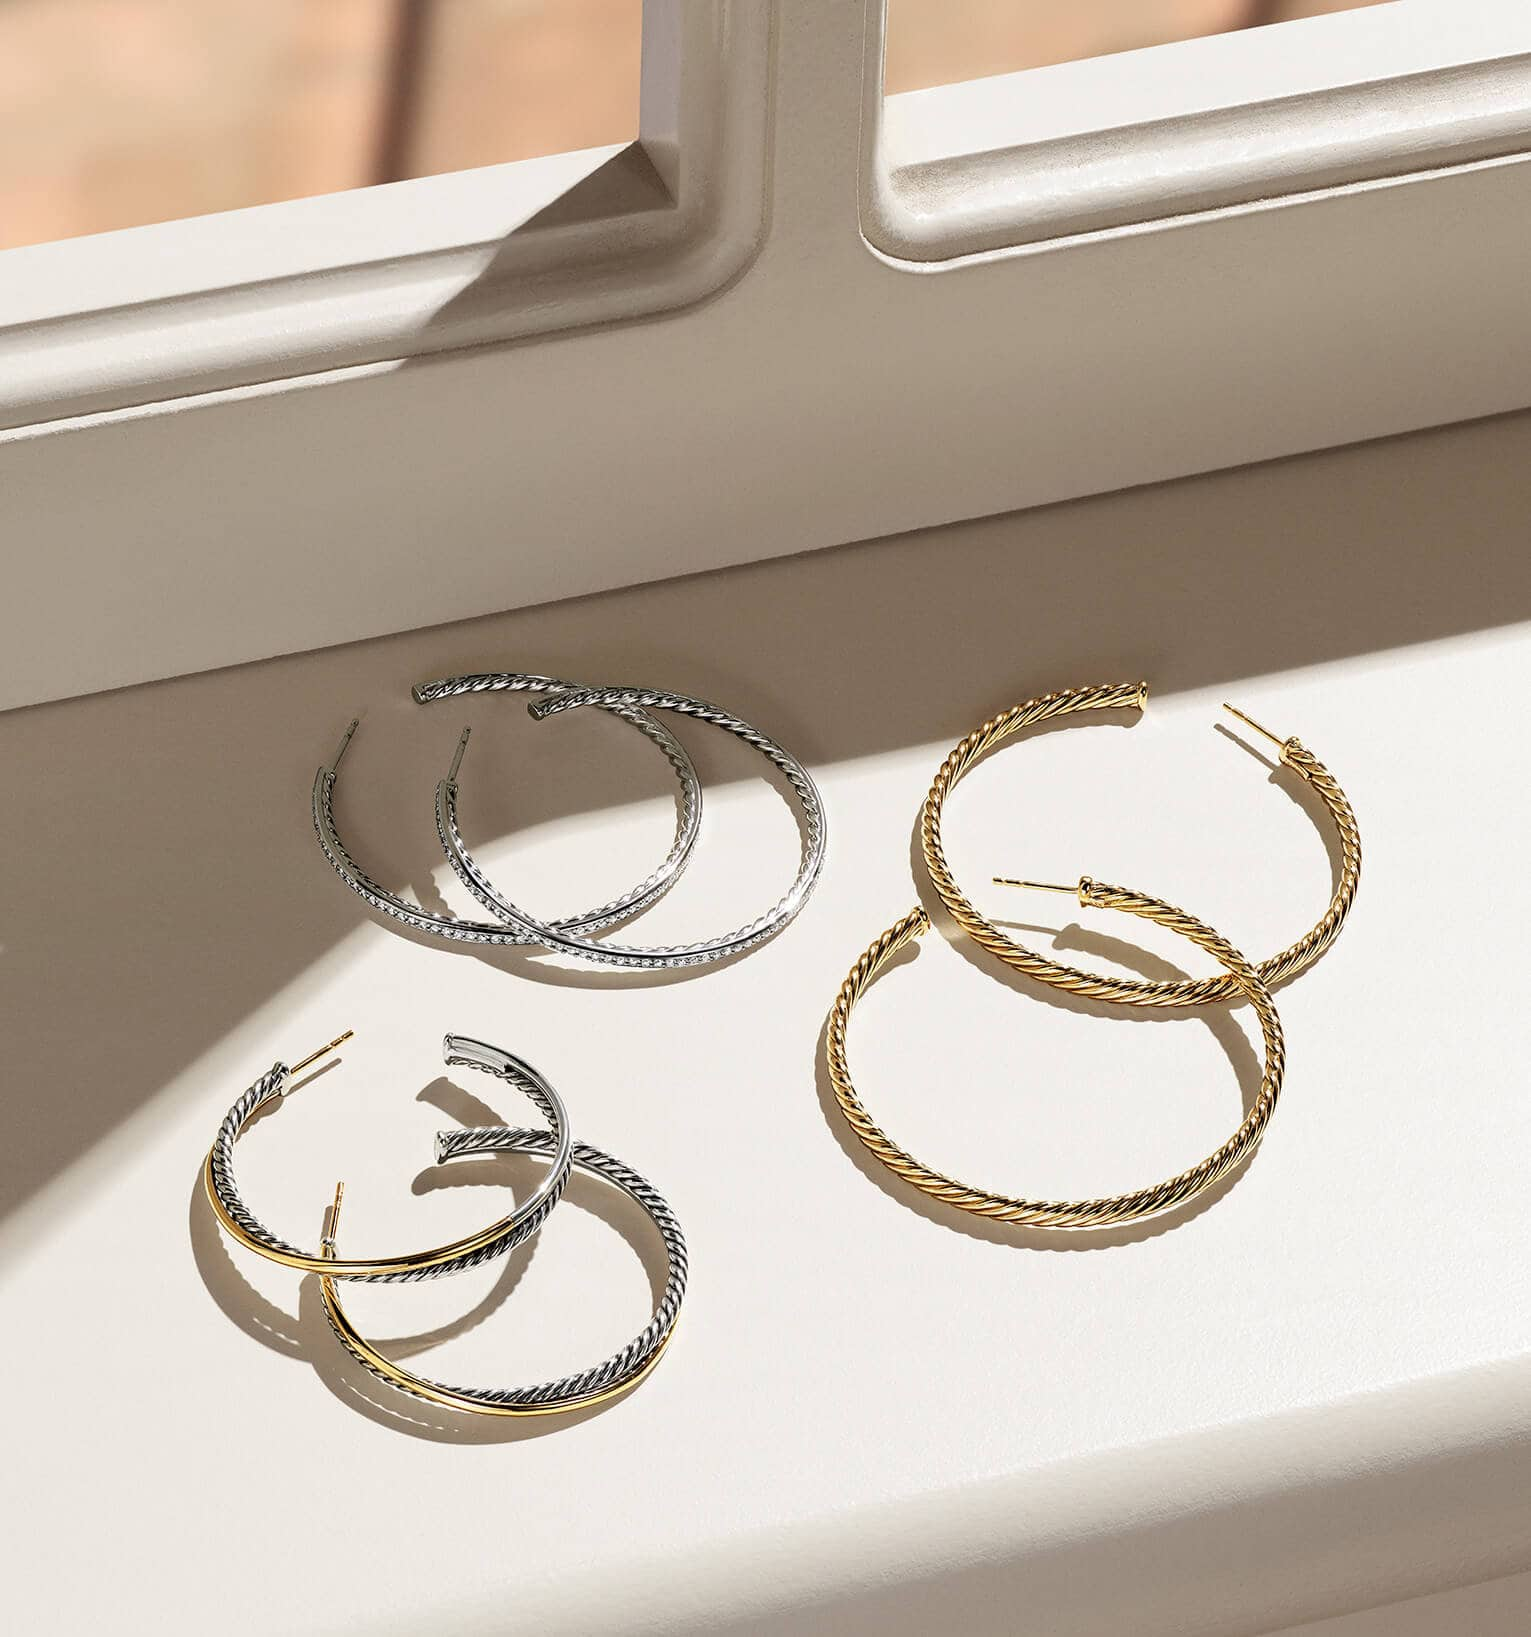 A color photograph shows three pairs of David Yurman women's hoop earrings from the Cable Collection scattered on a white windowsill with hard shadows. The jewelry is crafted from Cabled 18K yellow gold or sterling silver with or without 18K yellow gold accents.